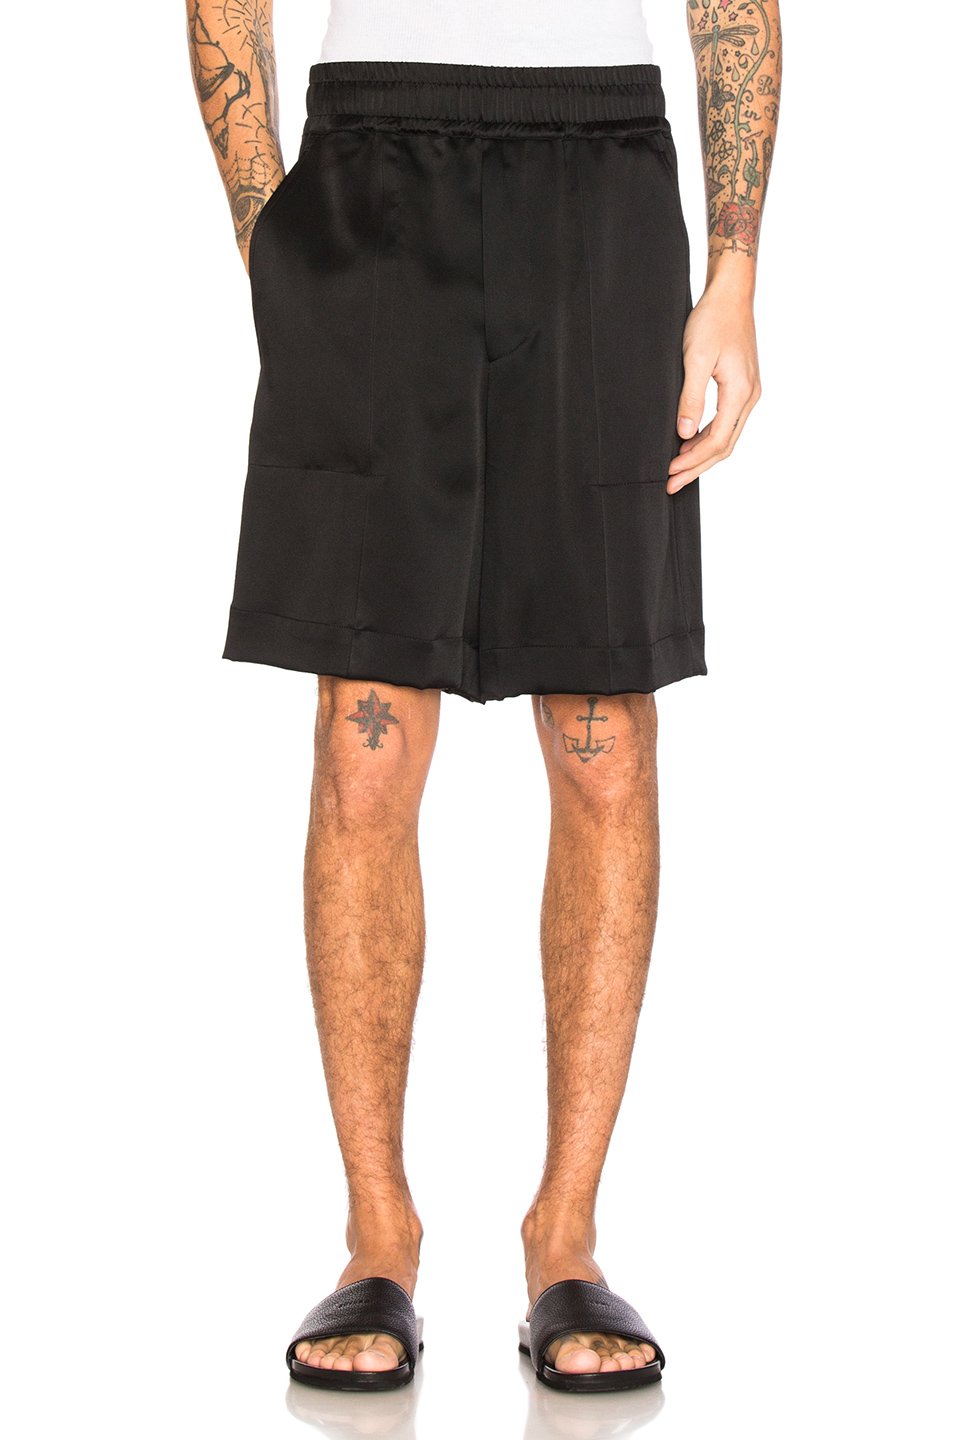 Haider Ackermann Shorts in Black